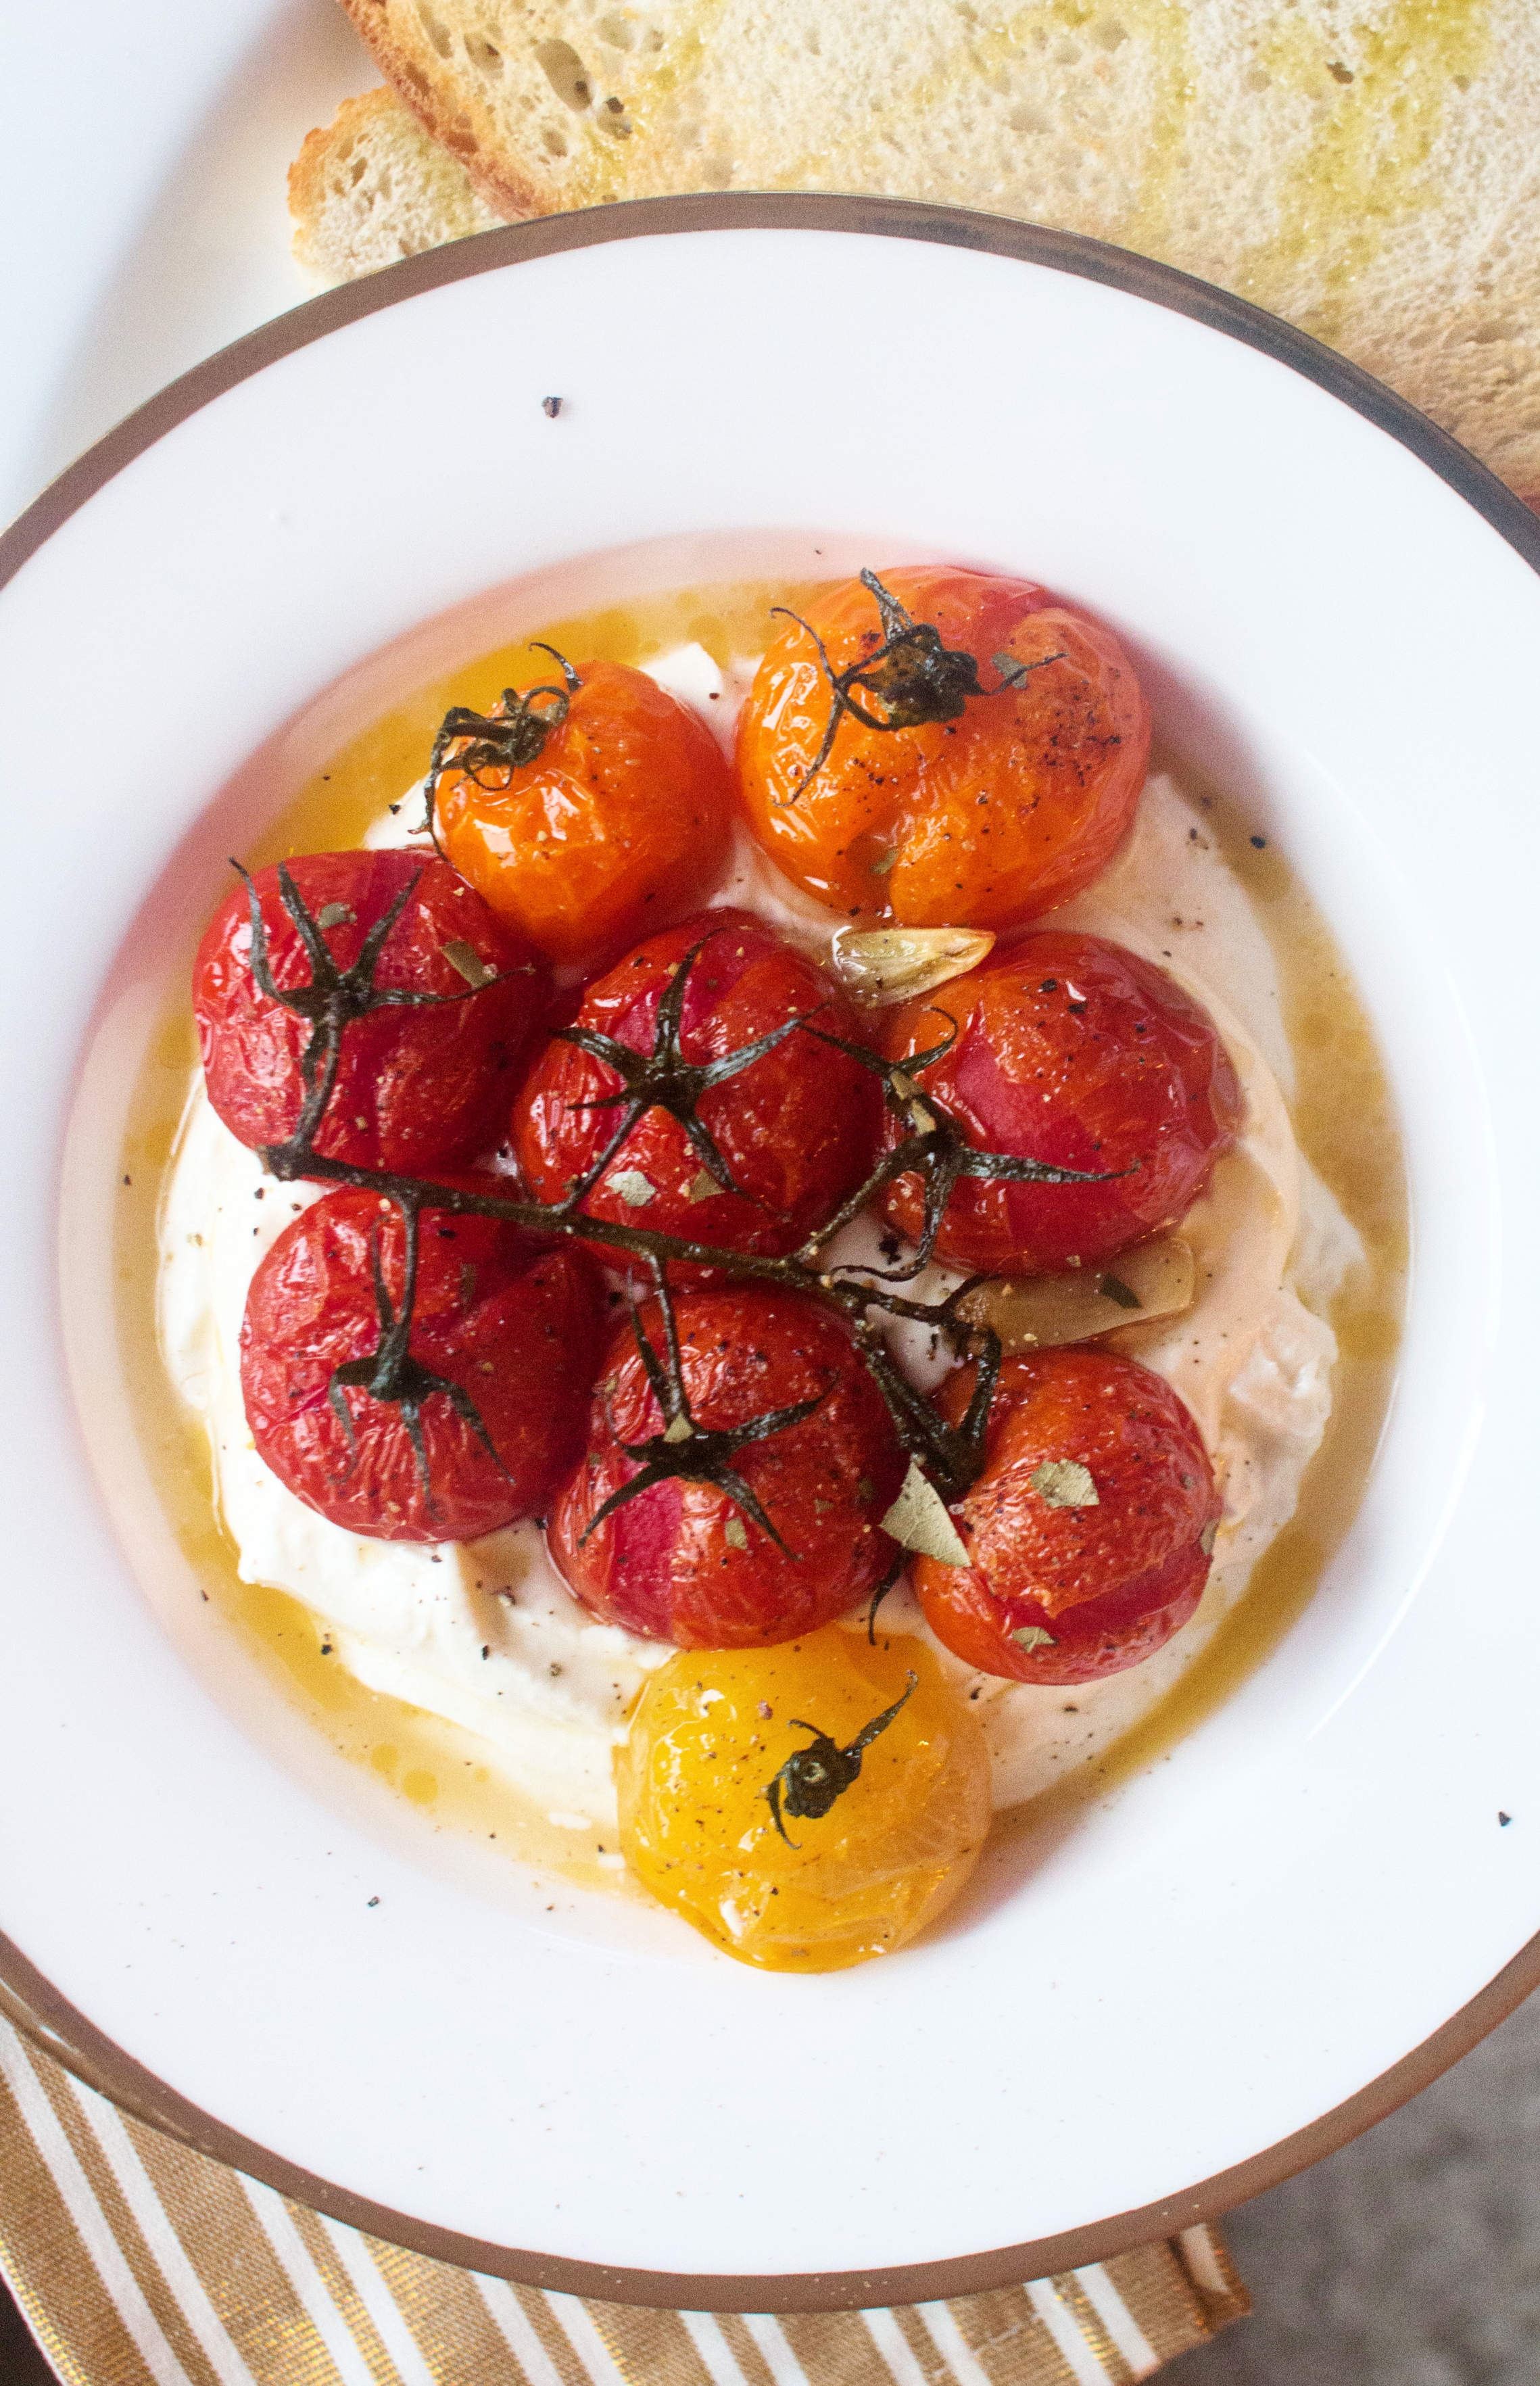 Confit Tomatoes with Whipped Feta on Sourdough